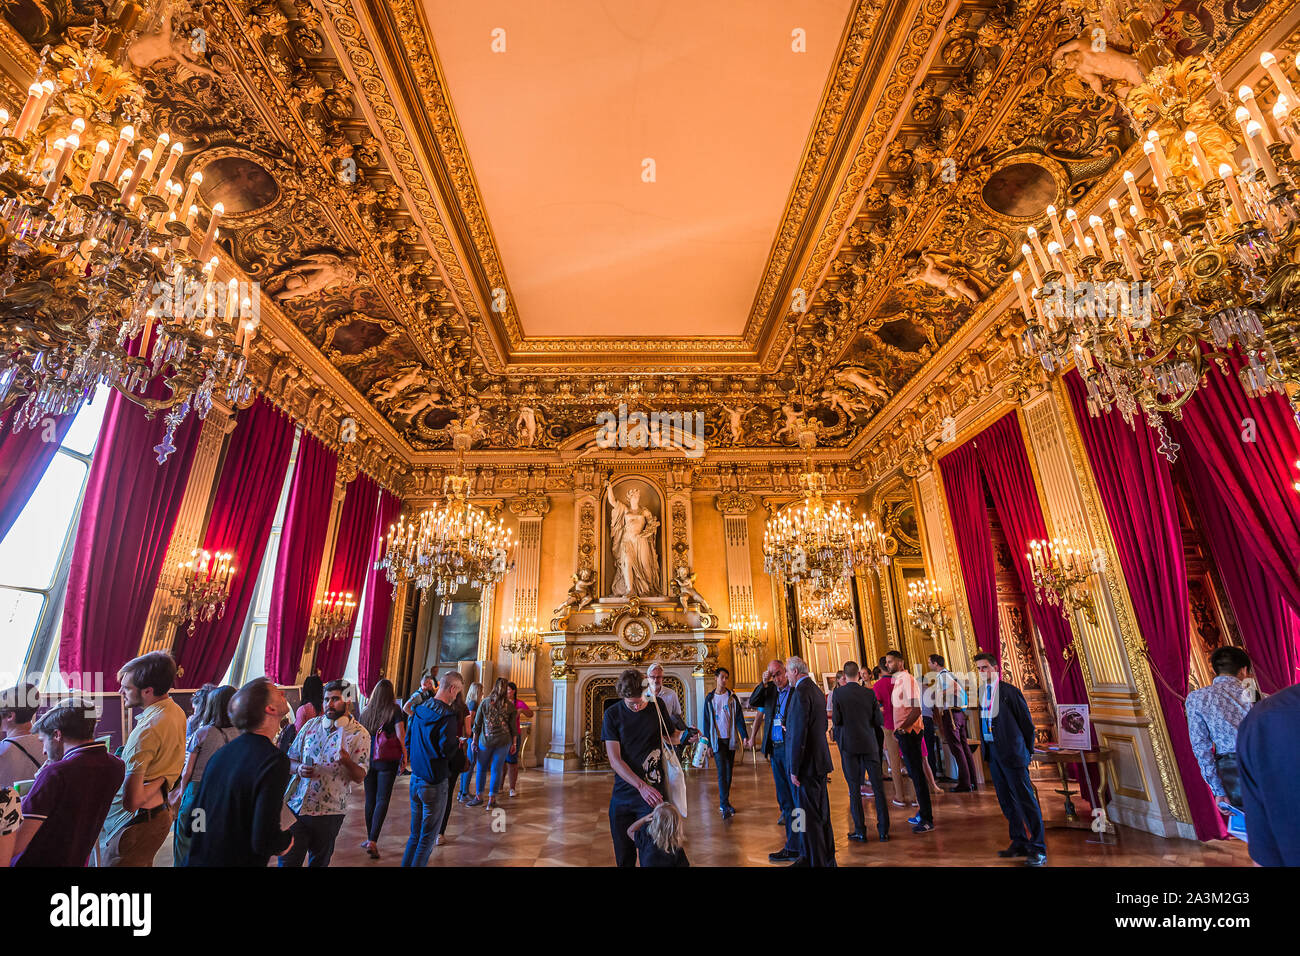 PARIS, FRANCE, SEPTEMBER 21, 2019 : interiors and decors of ministry of foreign affairs, quai d'Orsay, september 21, 2019, in Paris, France Stock Photo